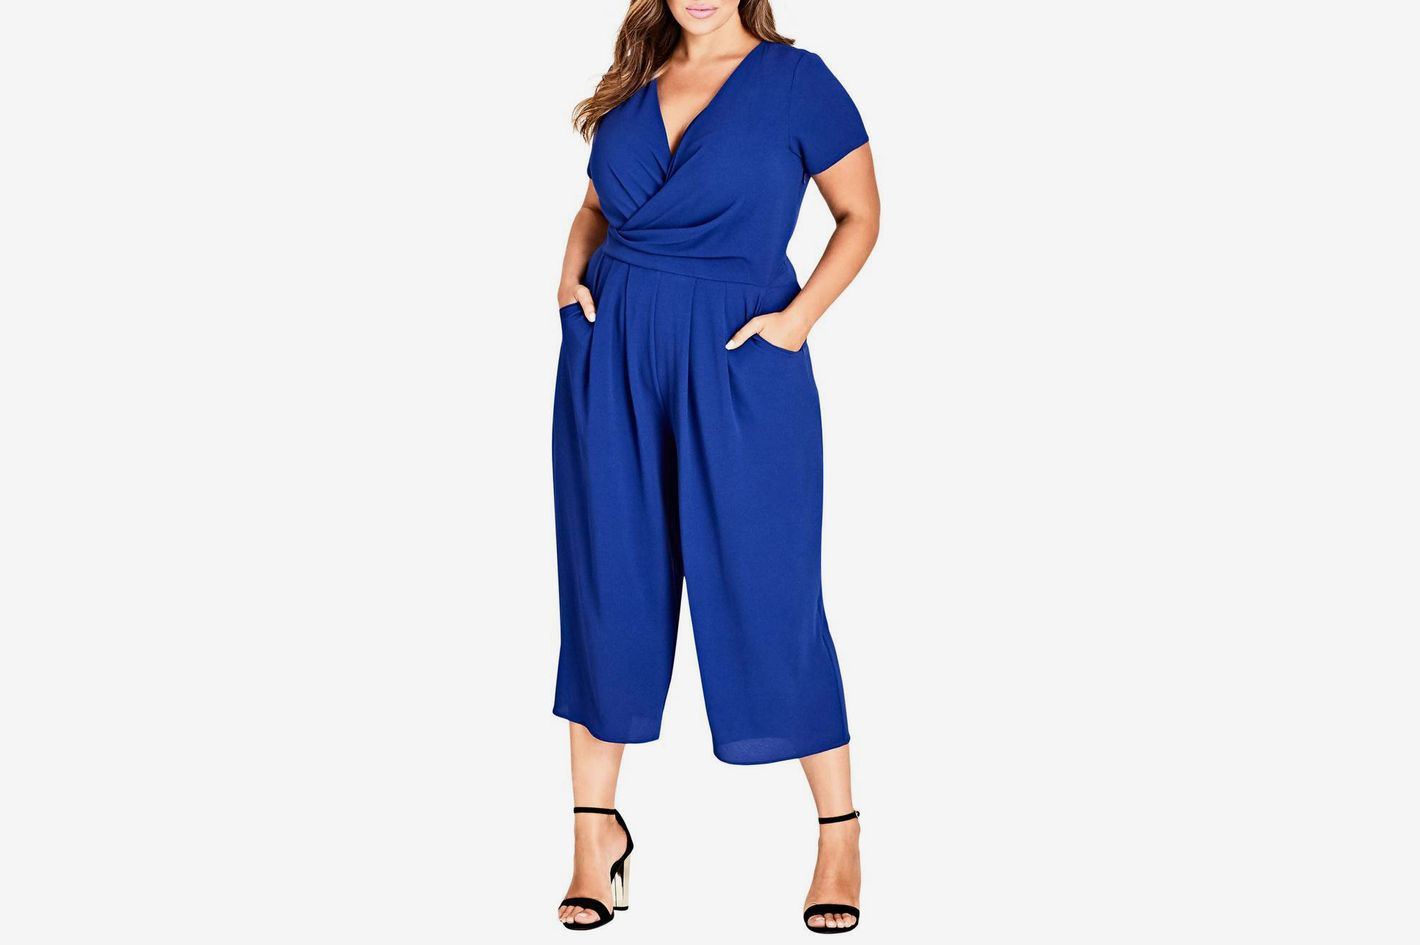 095a64efce9df3 24 Best Plus-Size Professional Clothing for Stylish Women